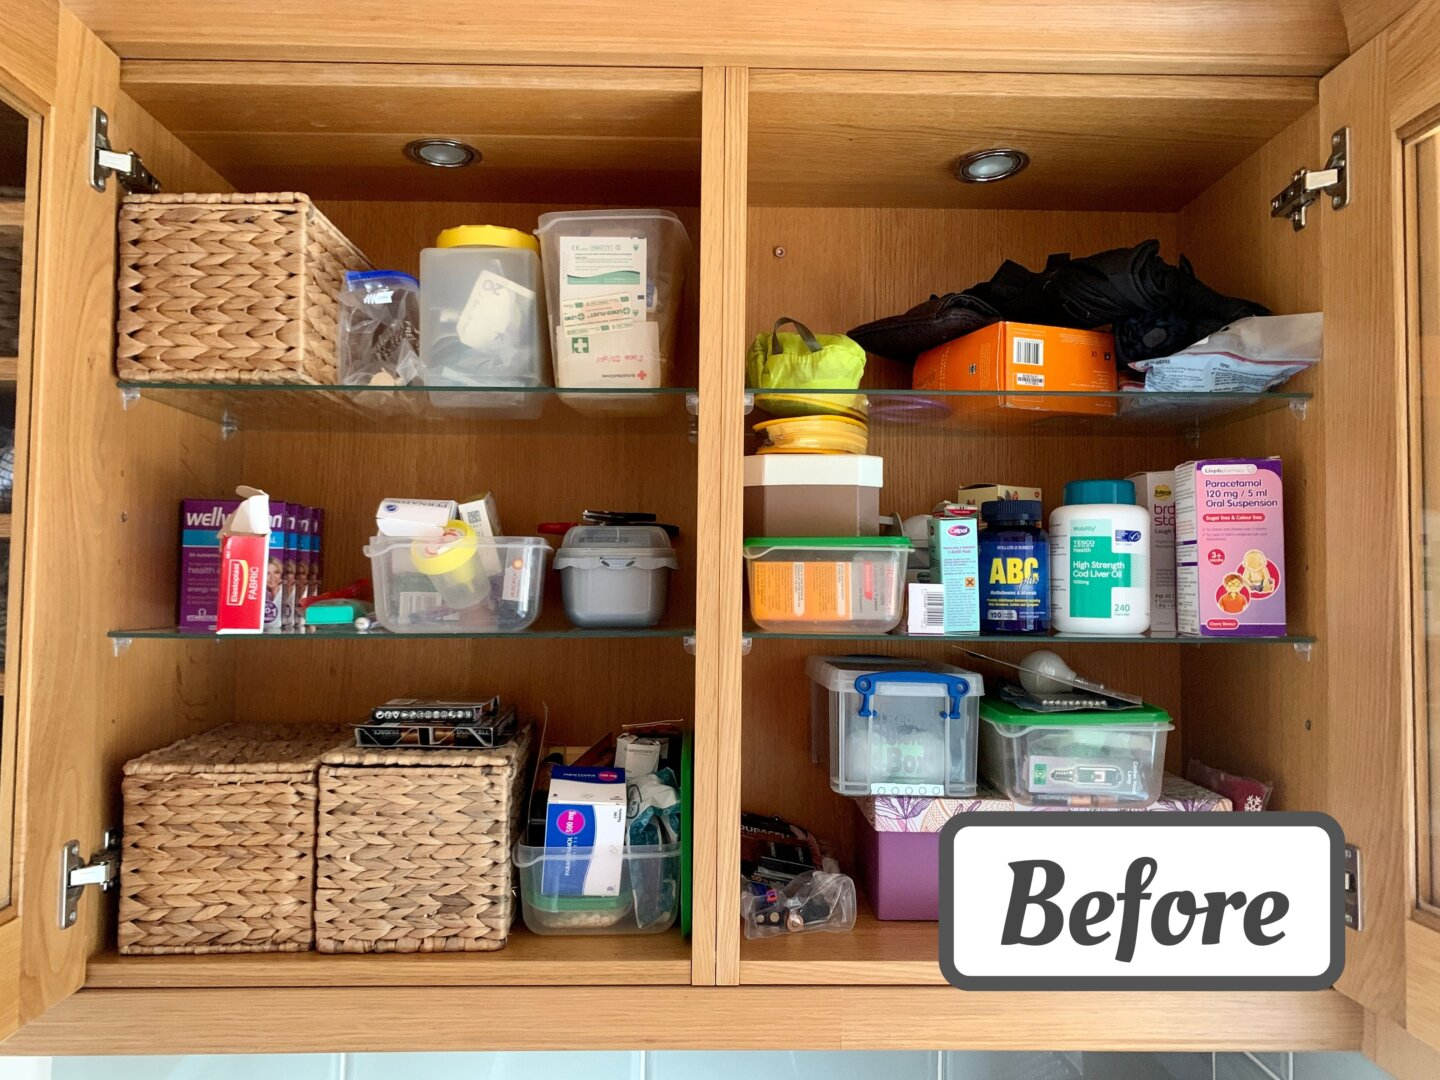 An image of a cluttered utility room cupboard with a 'before' sticker on it. Items such as vitamins, batteries and umbrellas are placed randomly on top of each other.